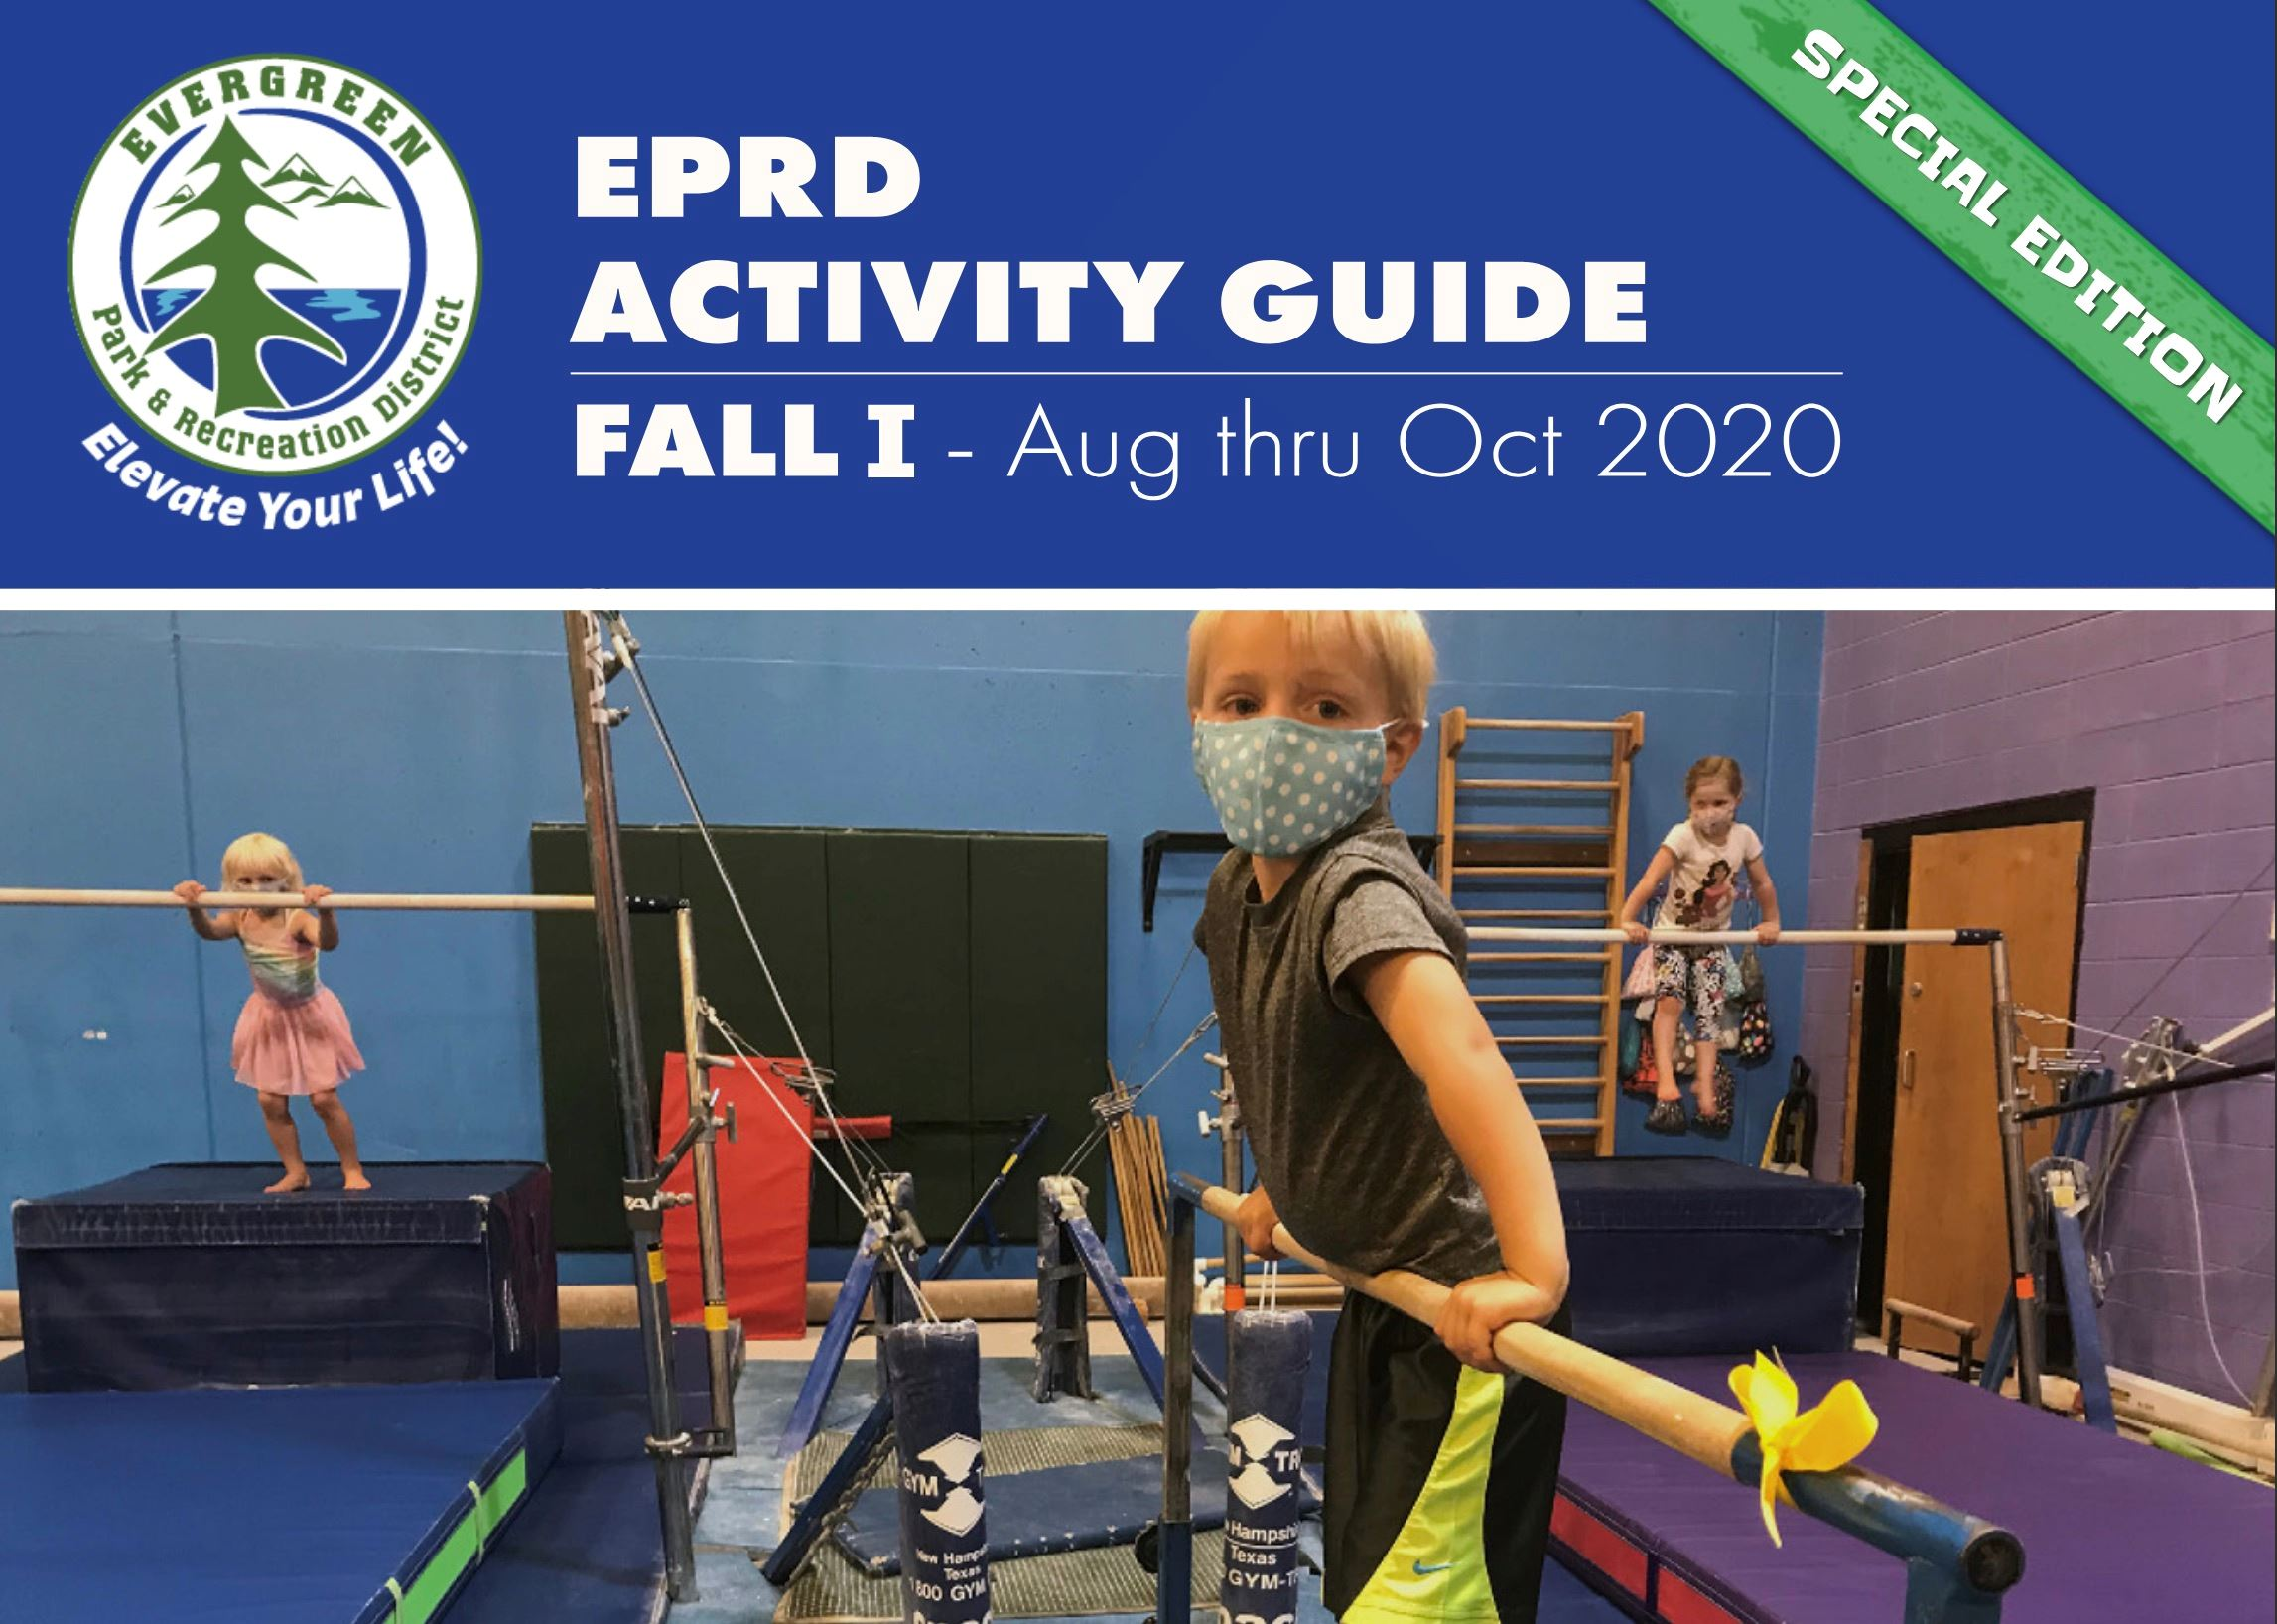 Front Cover of Fall 2020 Activity Guide. Youth doing gymnastics in face masks.